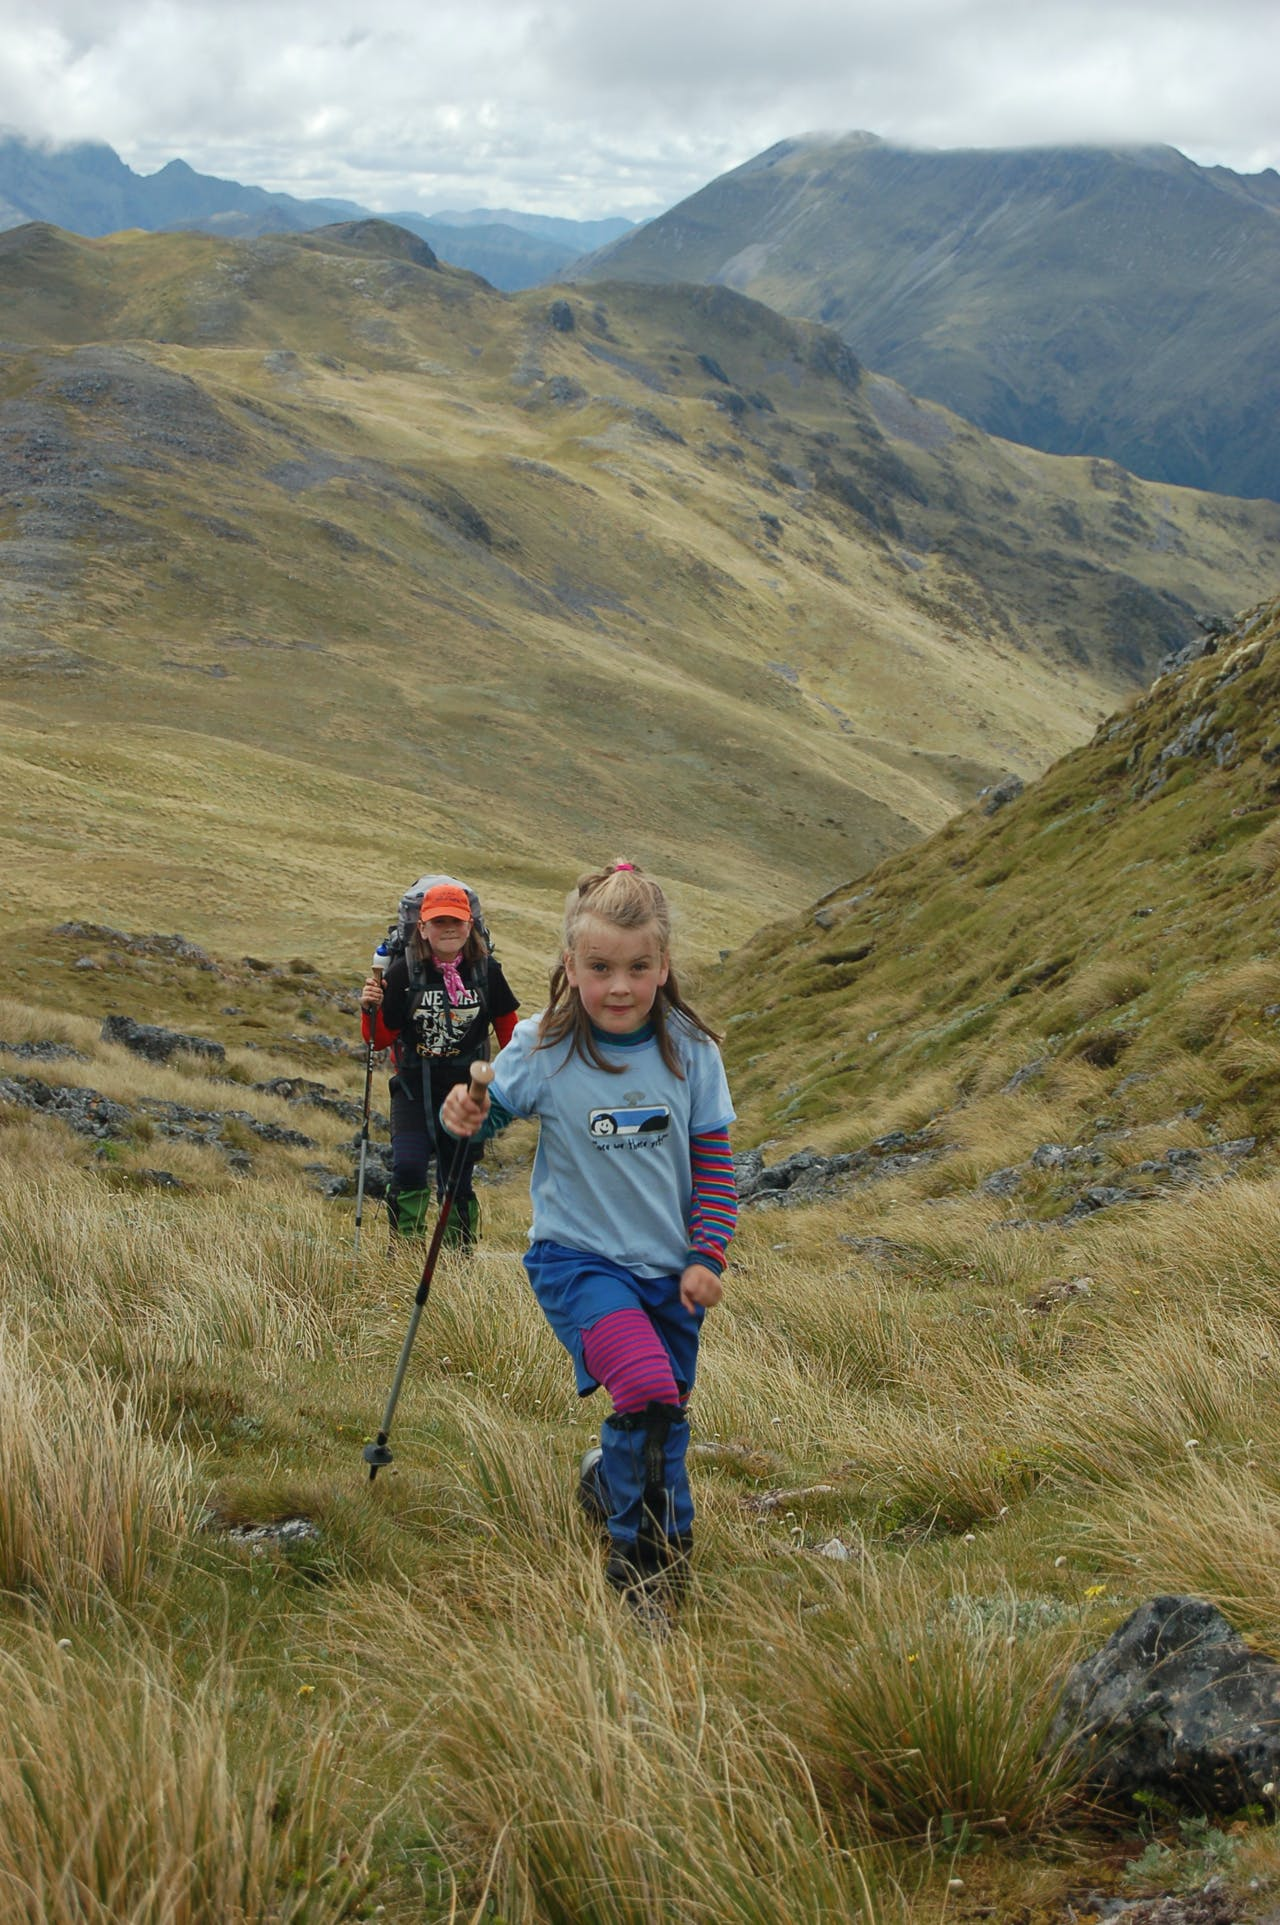 Mackenzie (in foreground) and Alice approach a low saddle on the ridge. Photo: Jo Stilwell